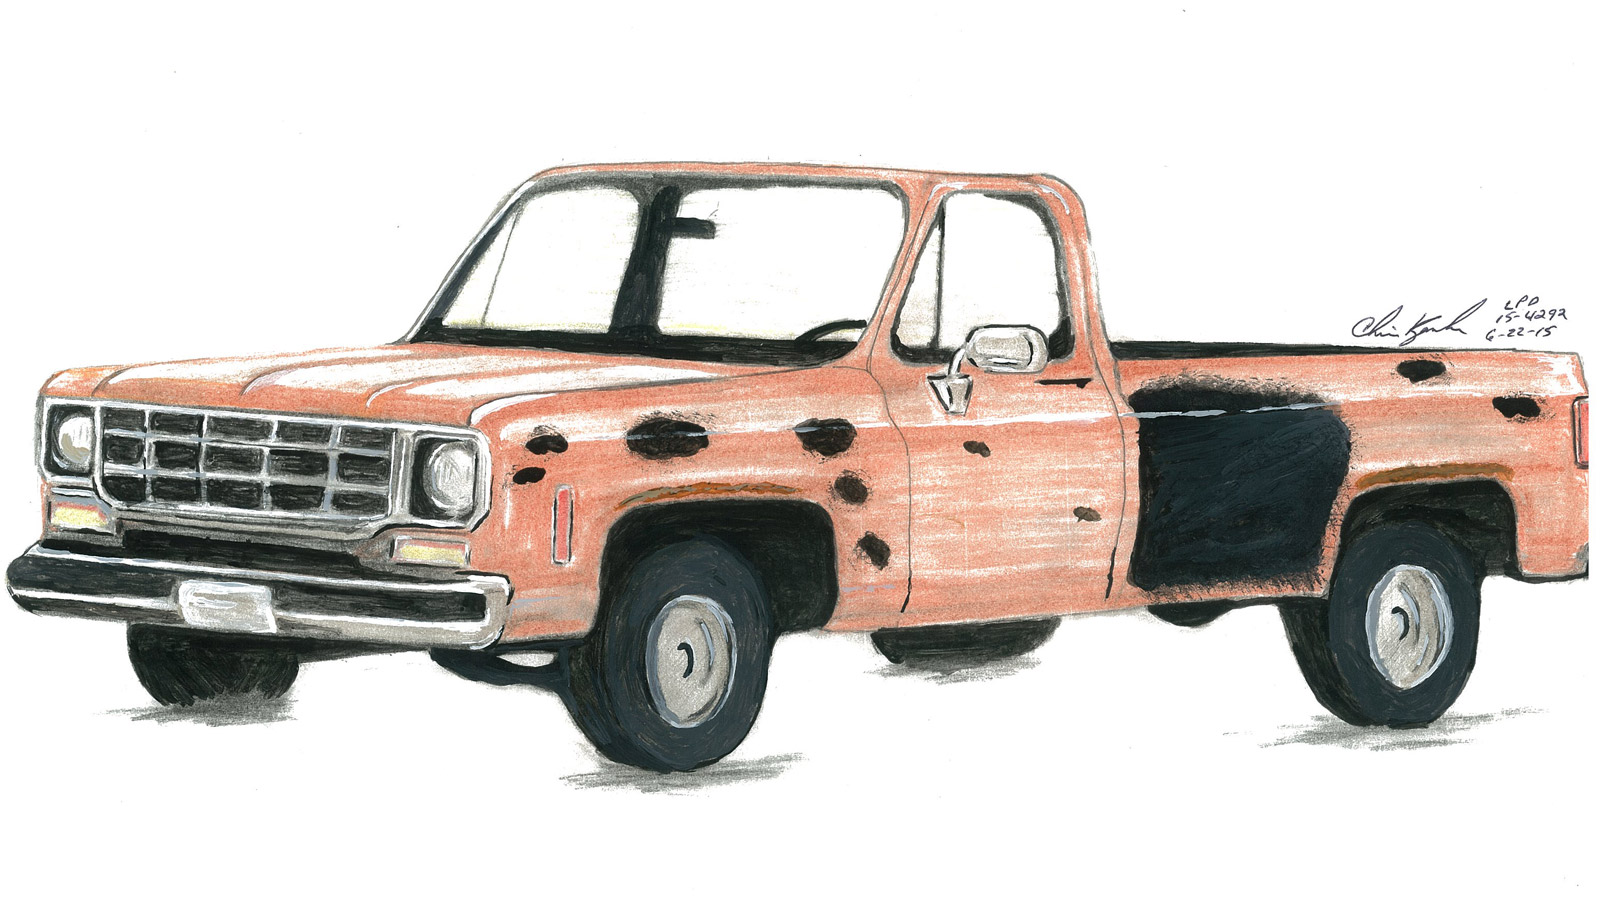 A drawing of a pickup truck authorities are looking for in the death of William Connole who was shot while taking a late night walk in Loveland (credit: CBS)